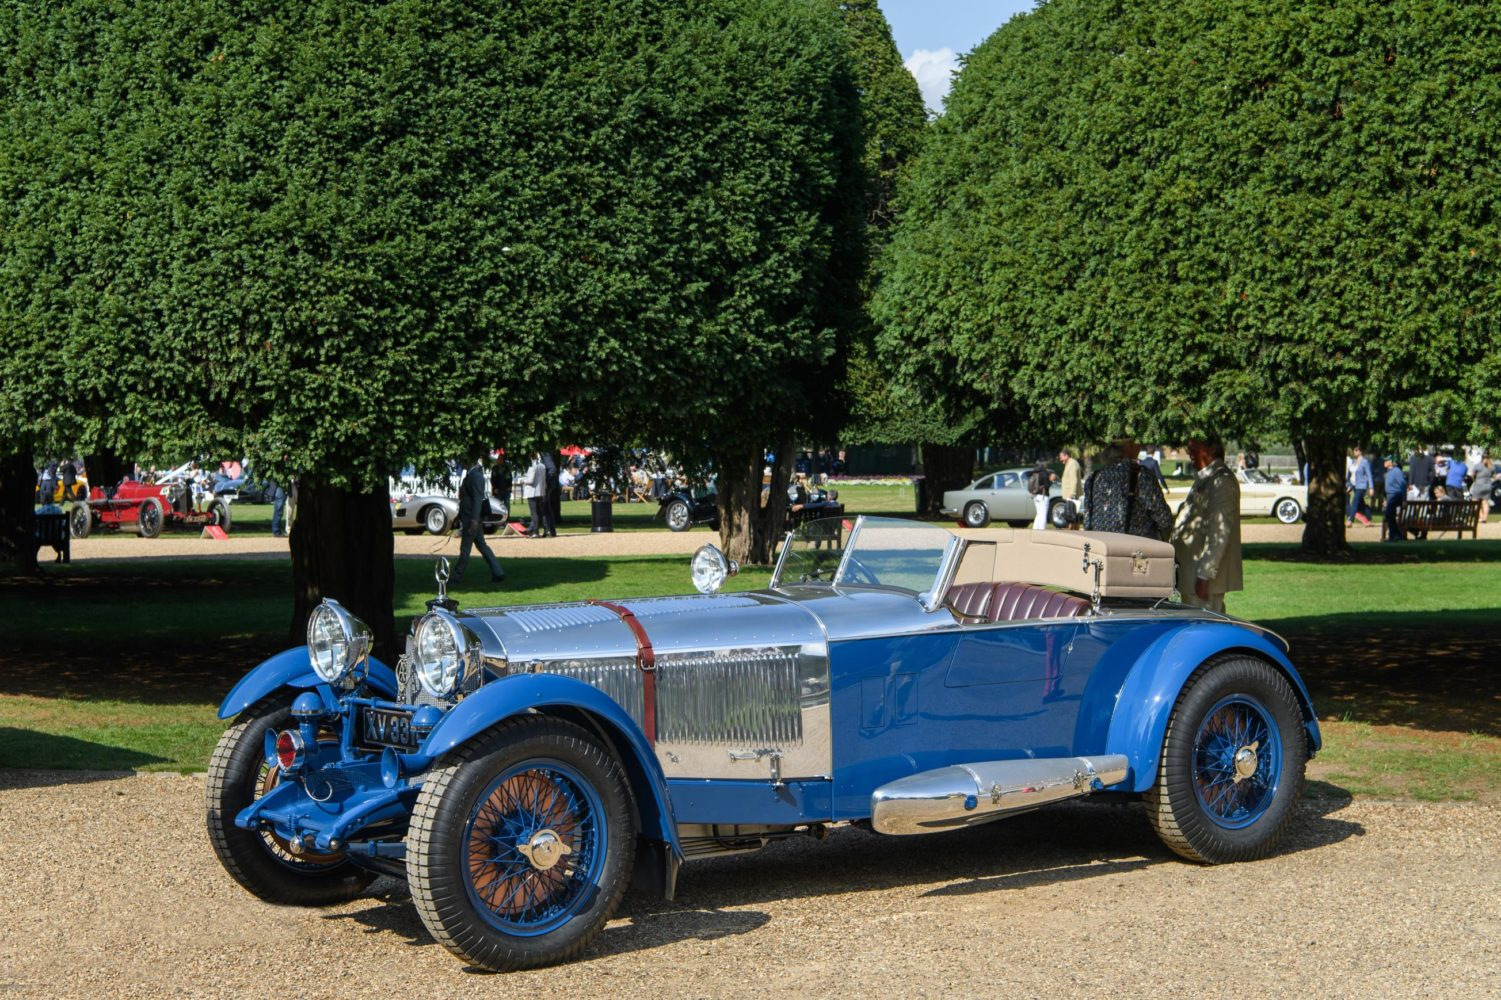 MERCEDES-BENZ S-TYPE 'BOAT TAIL' WINS BEST OF SHOW AT THE BIGGEST AND BEST CONCOURS OF ELEGANCE YET